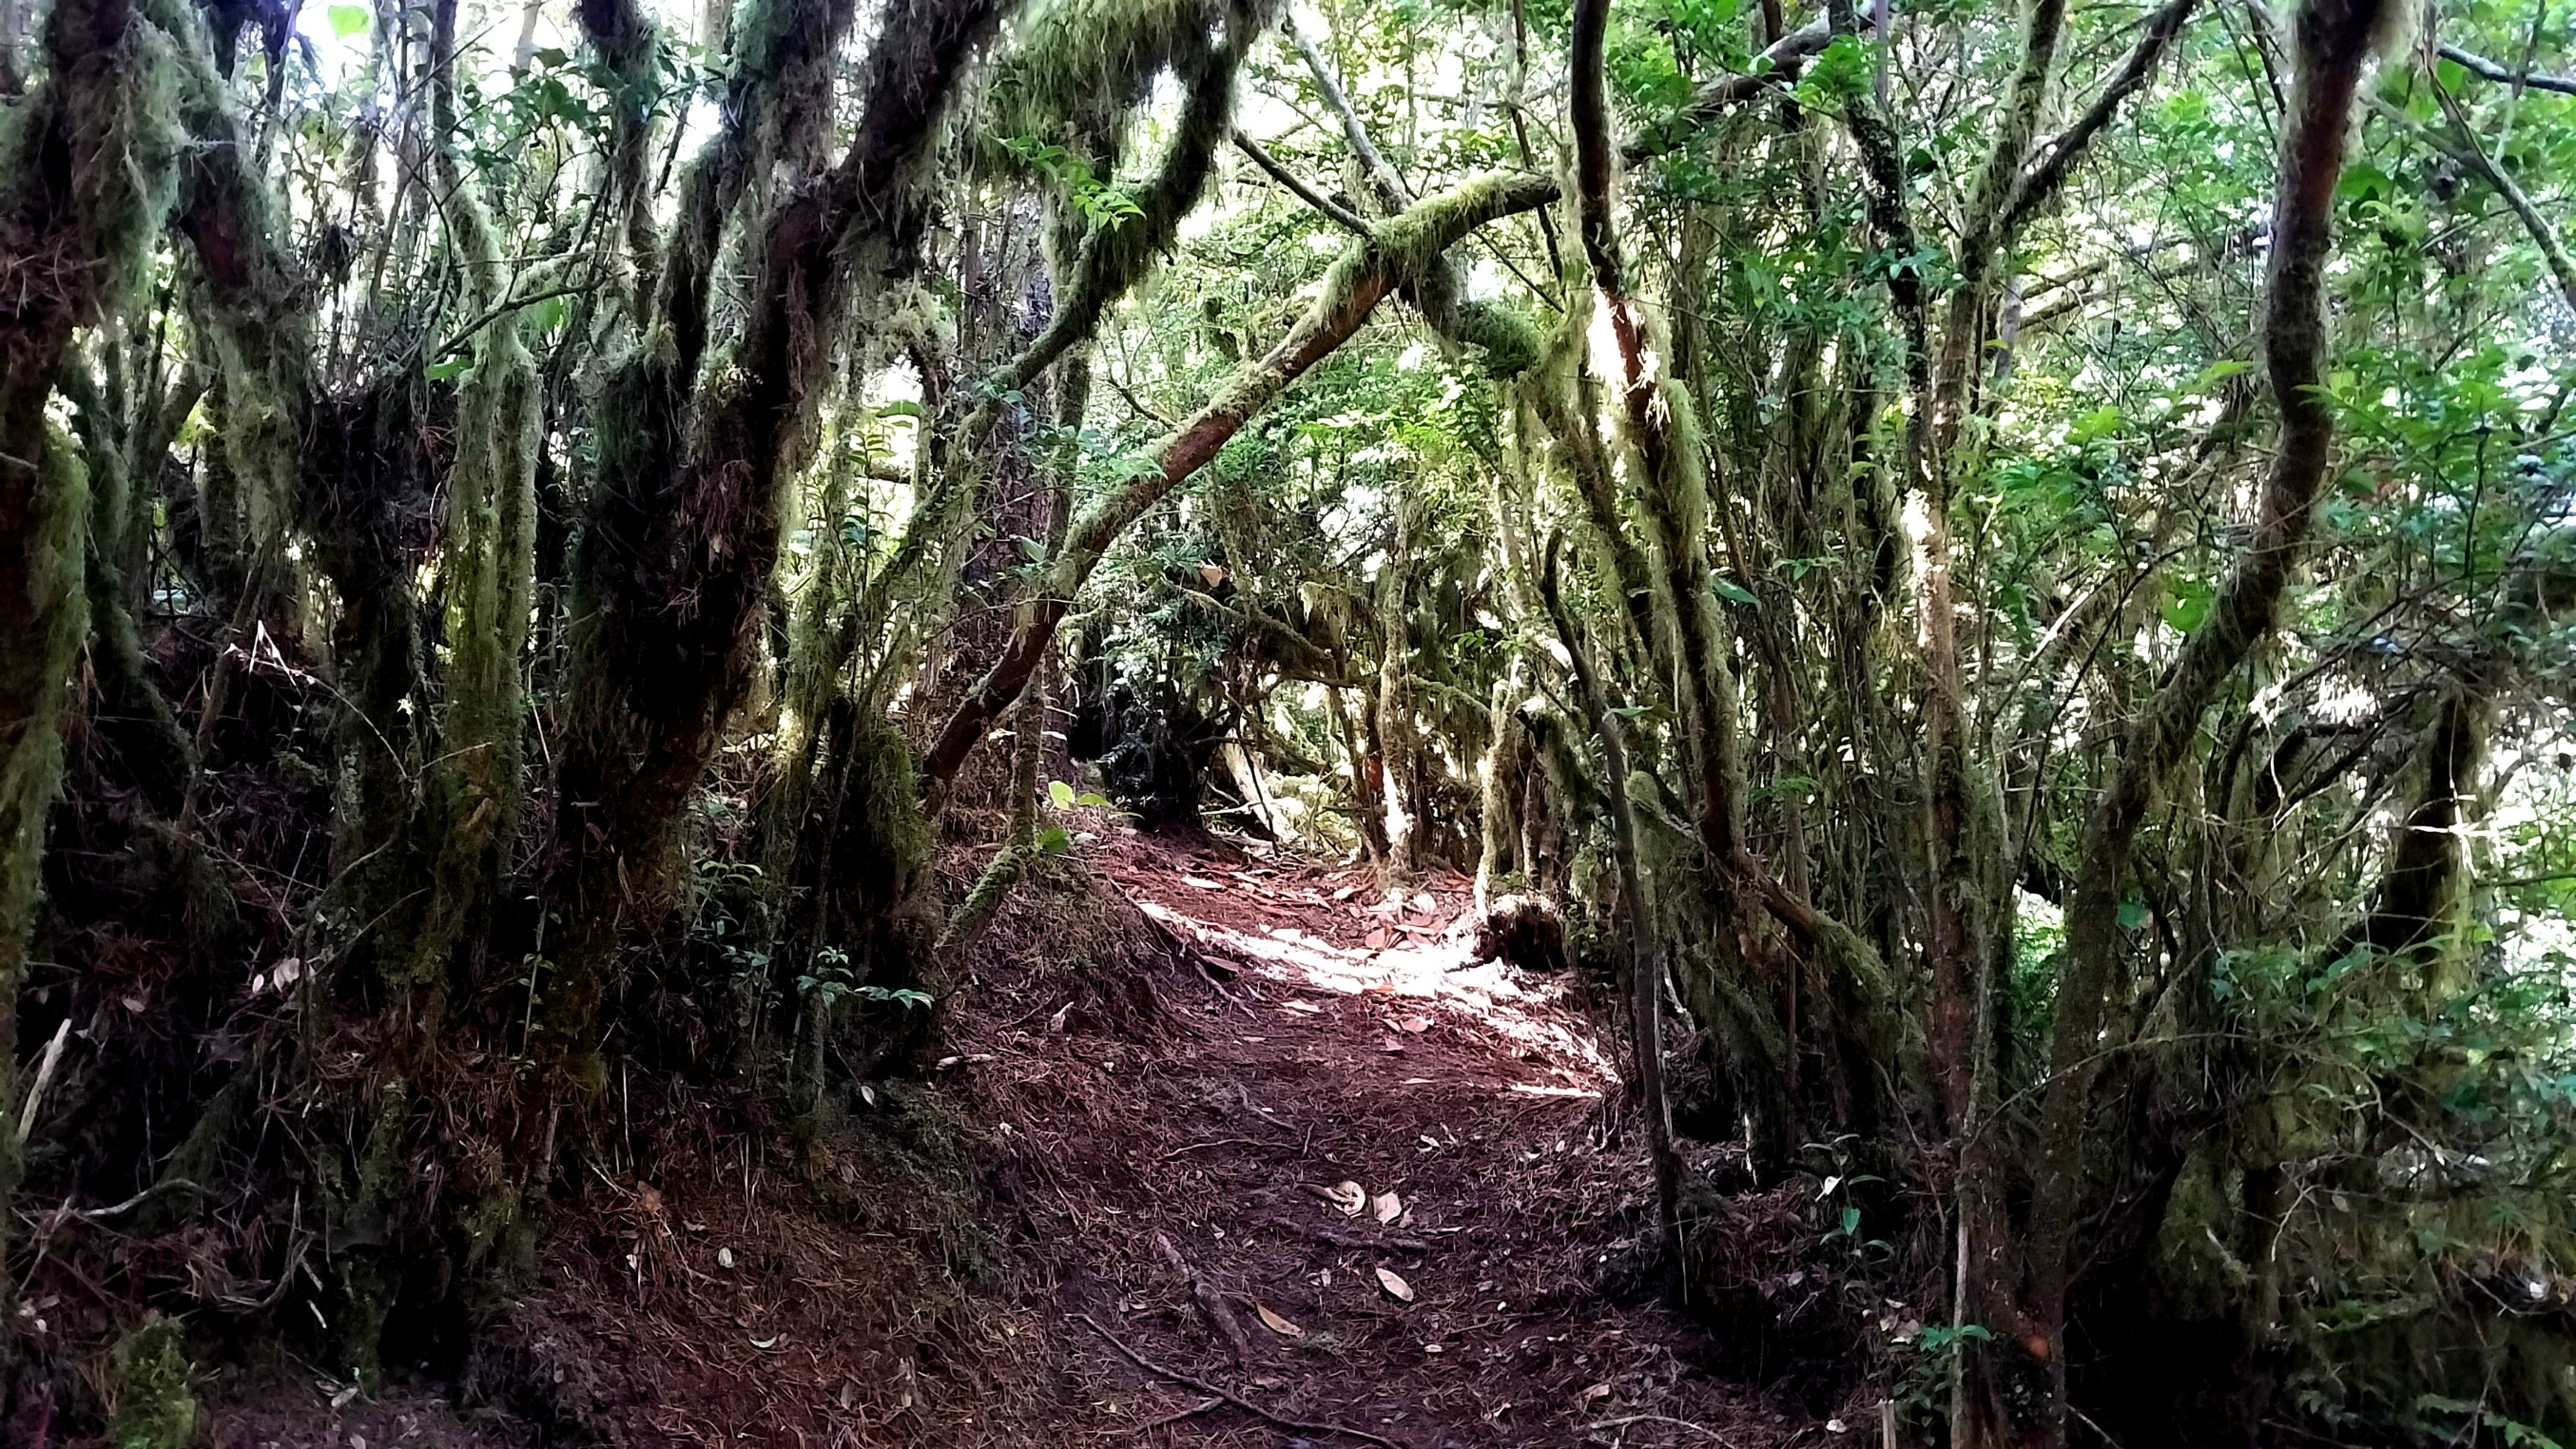 Hhobbit Trail near Heceta Head